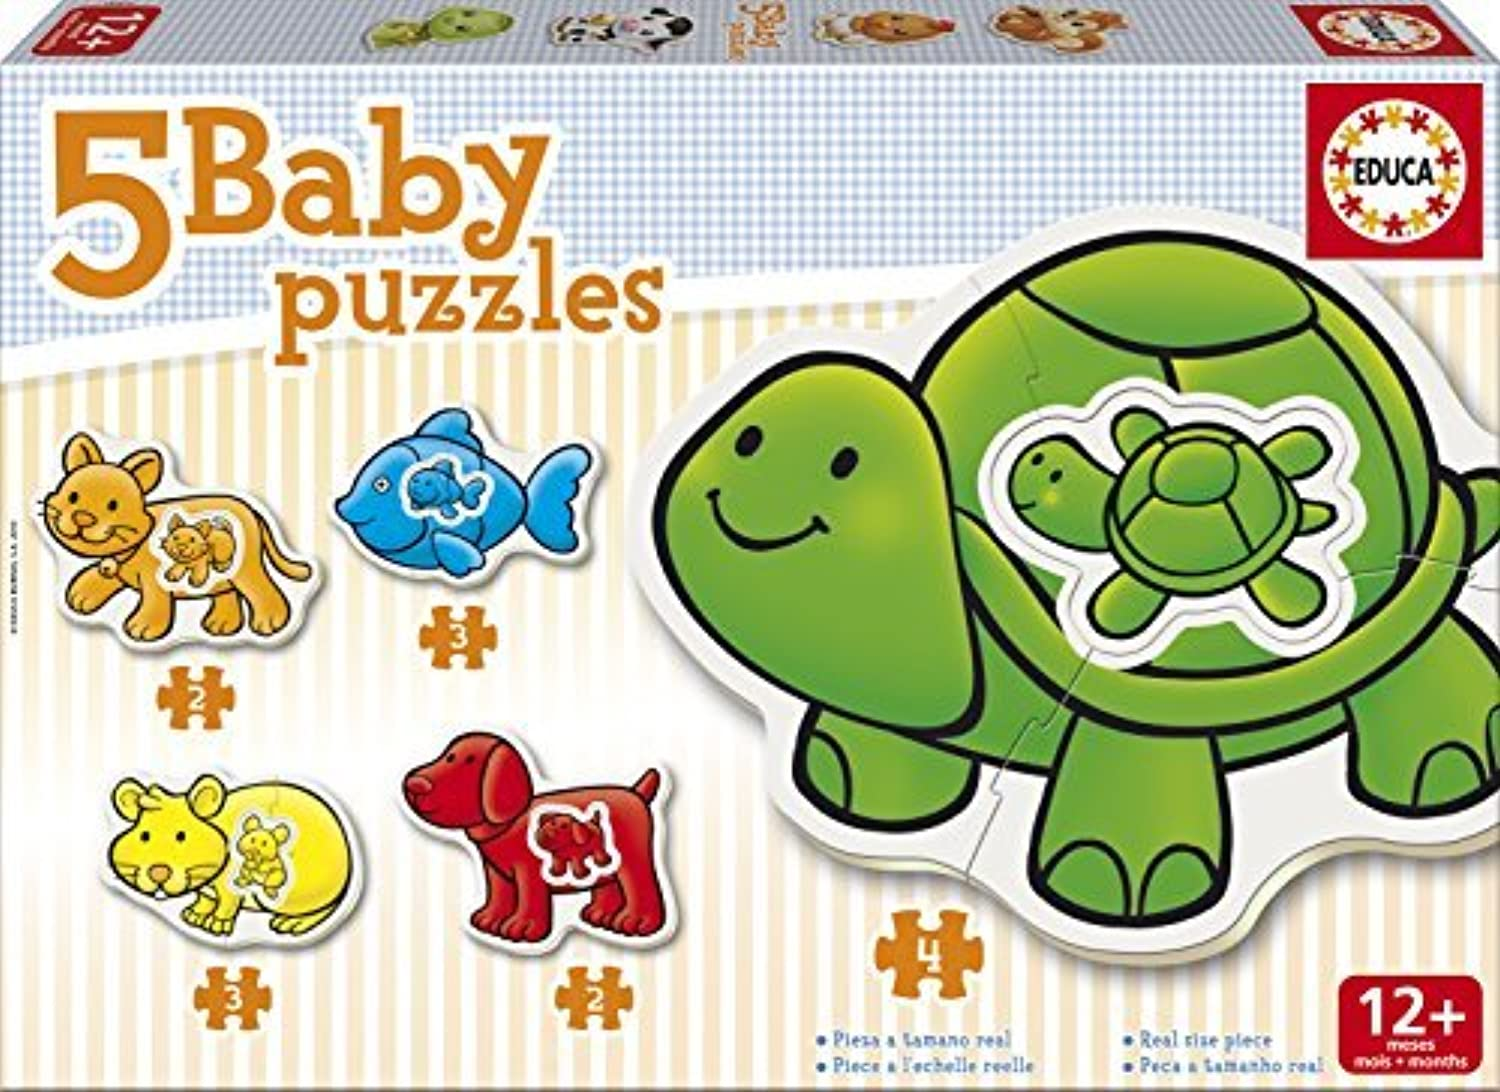 Jigsaw Puzzles - 2 to 4 Pieces - 5 Baby Puzzles - Domestic Animals by Educa